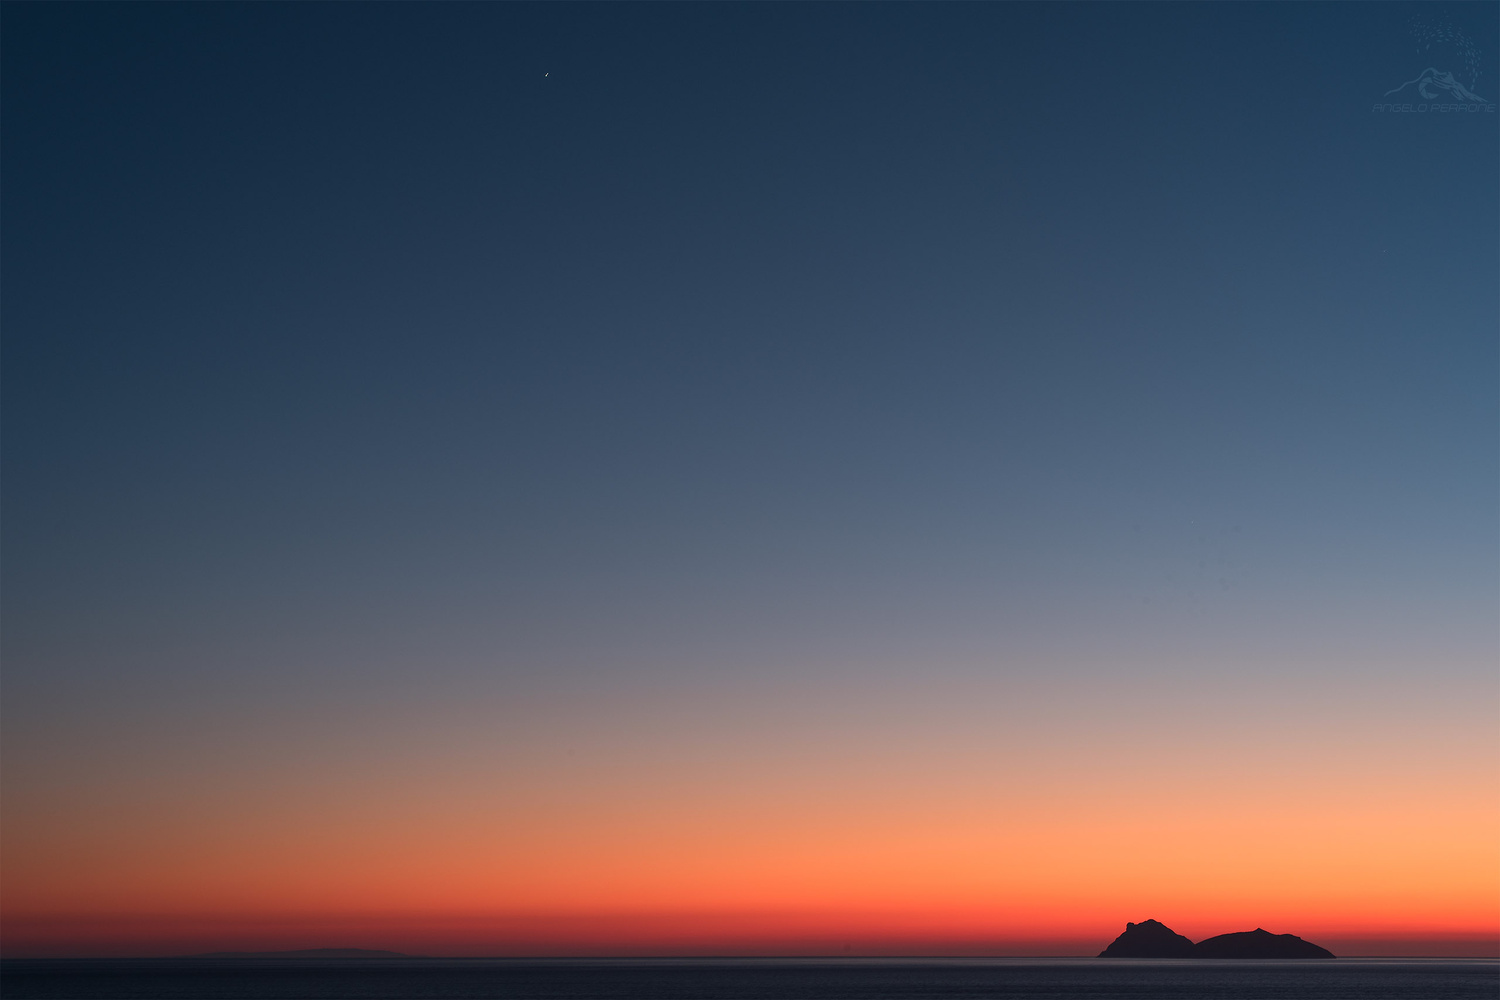 The Sunset of Jupiter by ANGELO PERRONE